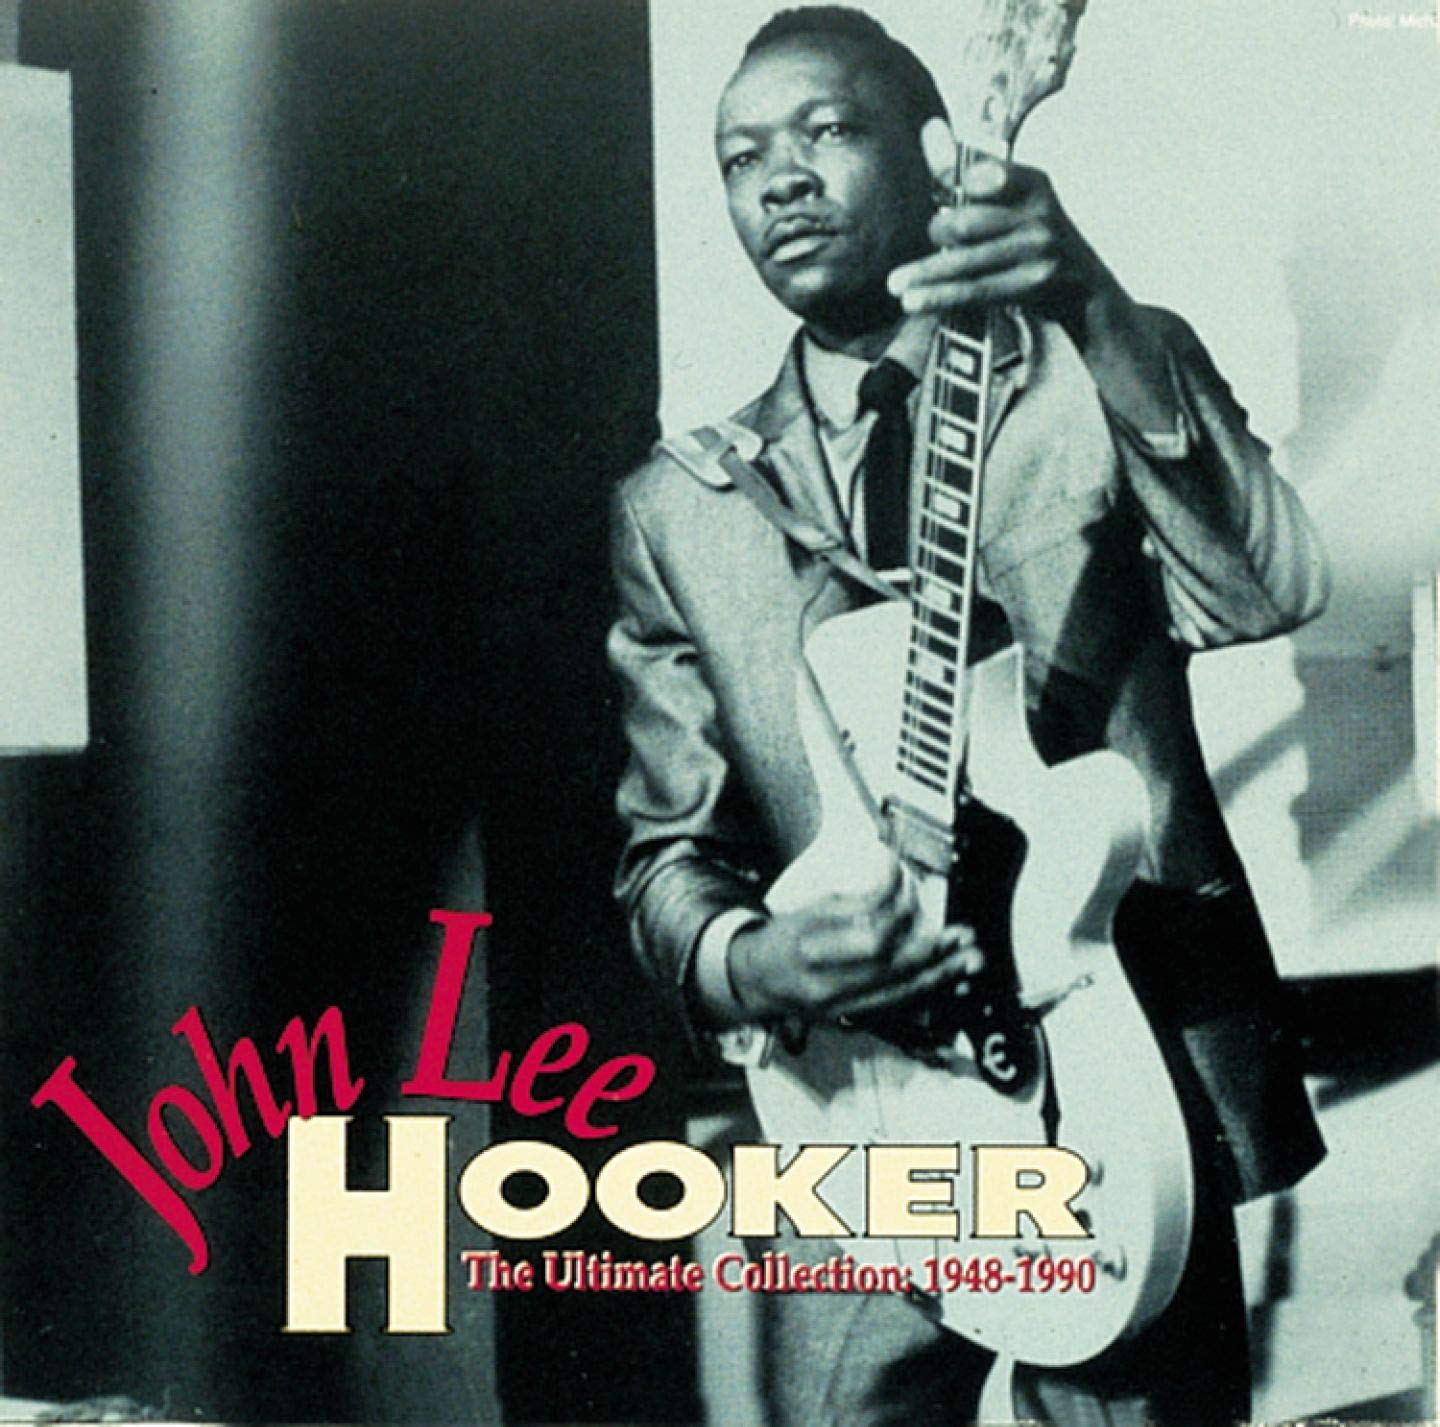 John Lee Hooker: The Ultimate Collection 1948-1990 by Rhino